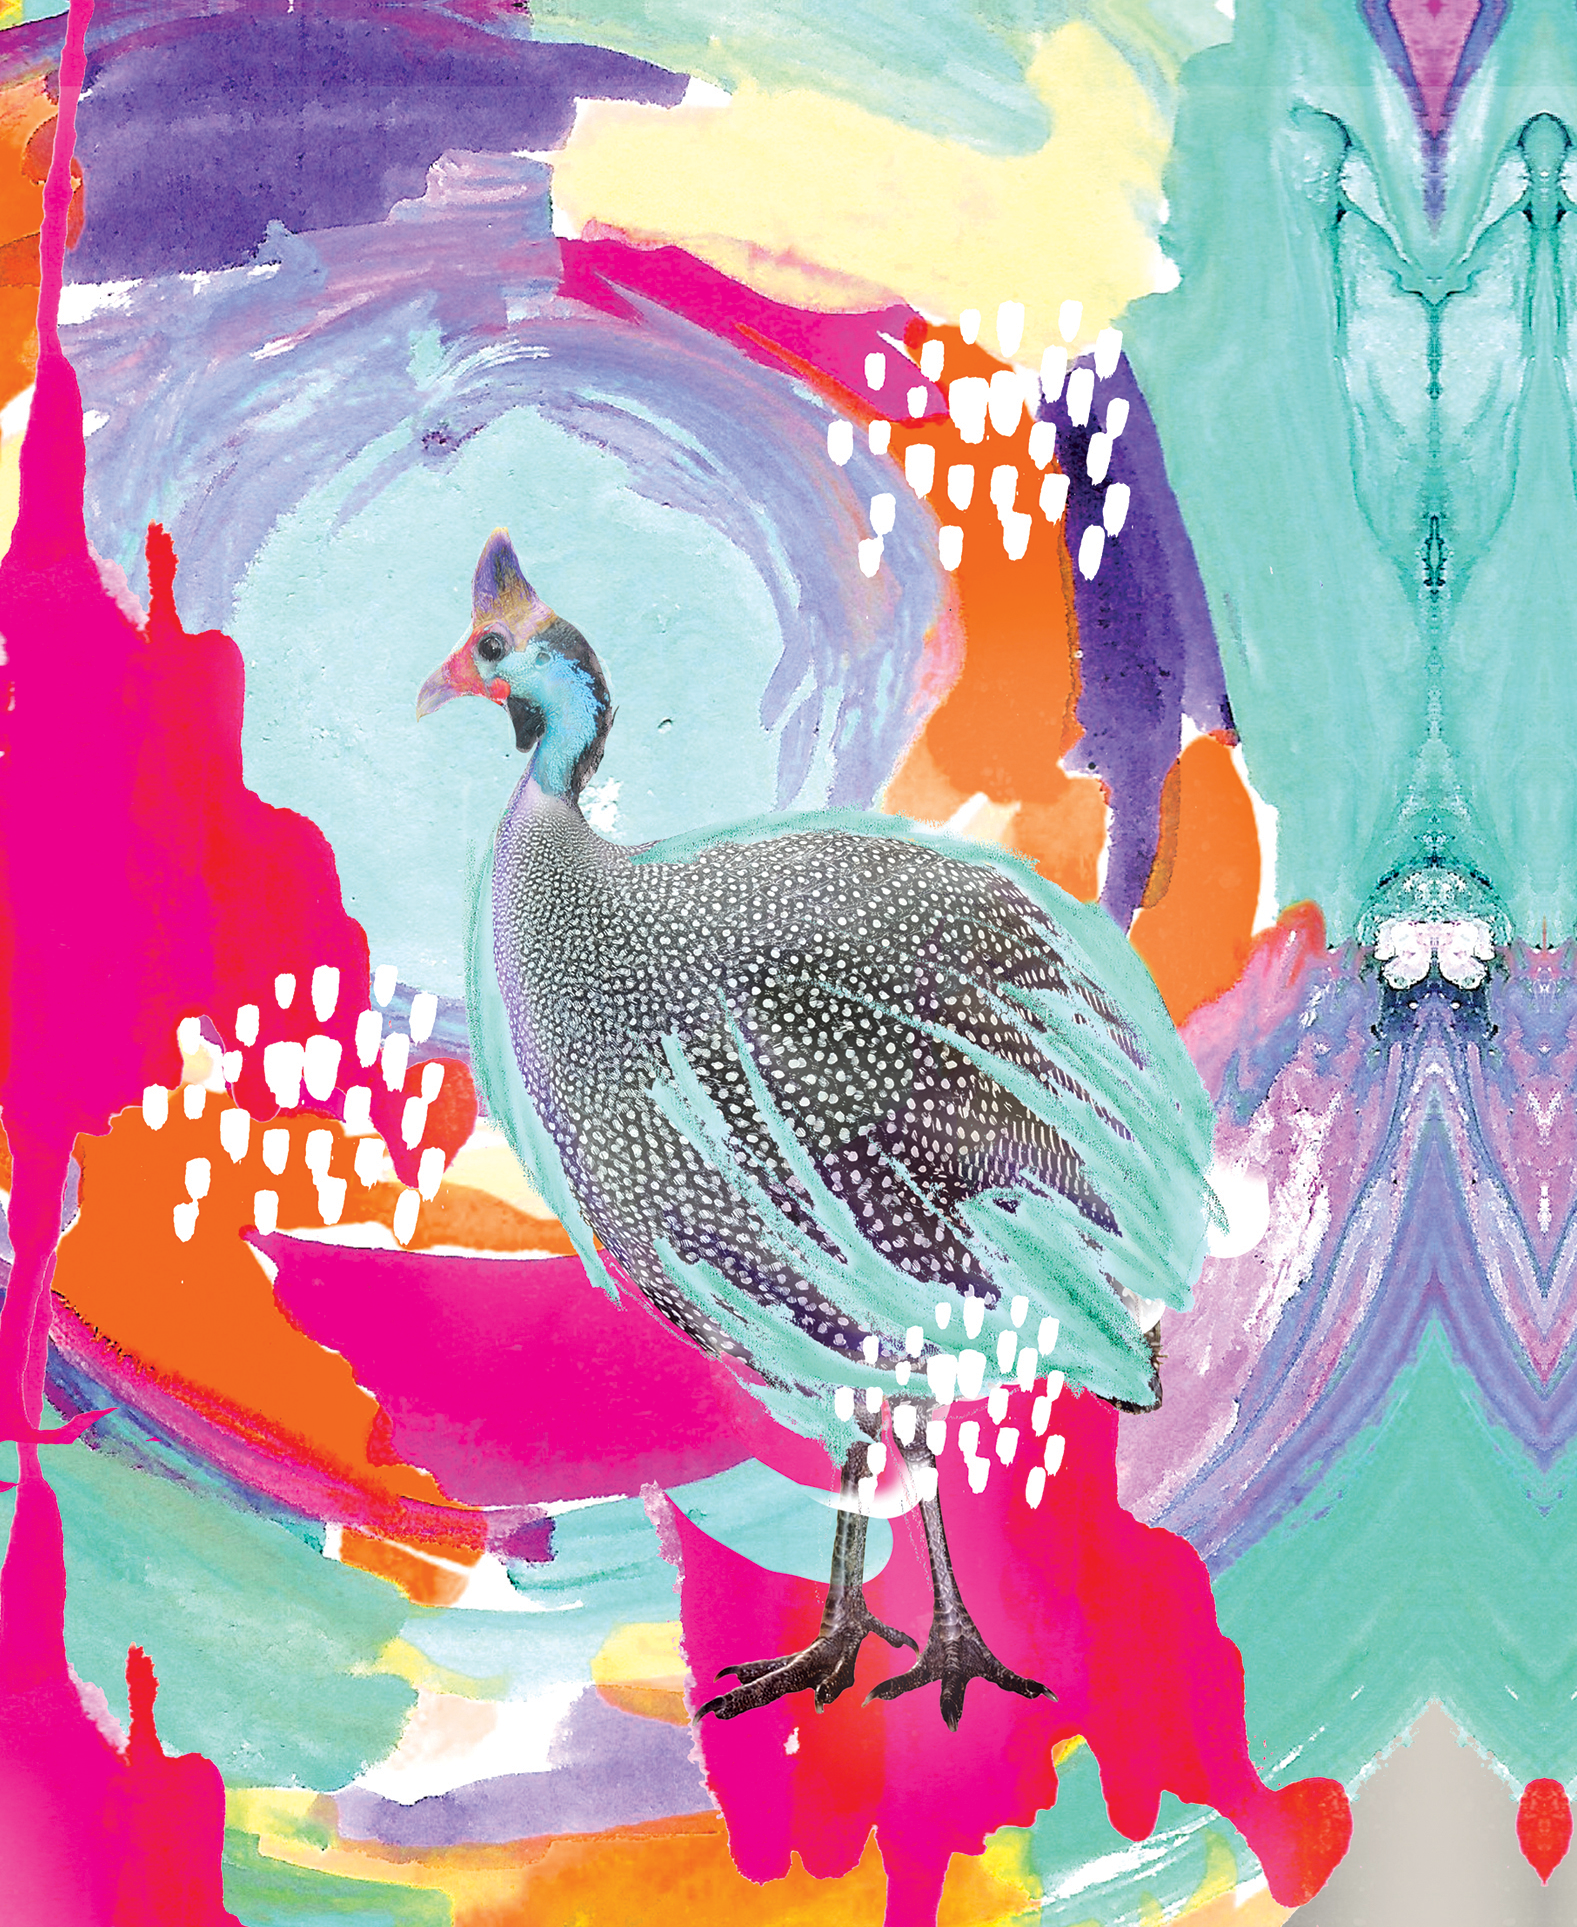 OPTIMISTIC GUINEA FOWL    The name Kangarui combines the khanga—the most classic East African textile—and Rui's name. But kanga is also the Swahili word for the guinea fowl, the white-dotted, blue-faced birds that roam in the Kenyan wild. This design, and the beautiful bird itself, embodies the rich spirit of Kangarui: multi-cultural, positive, and energetic.